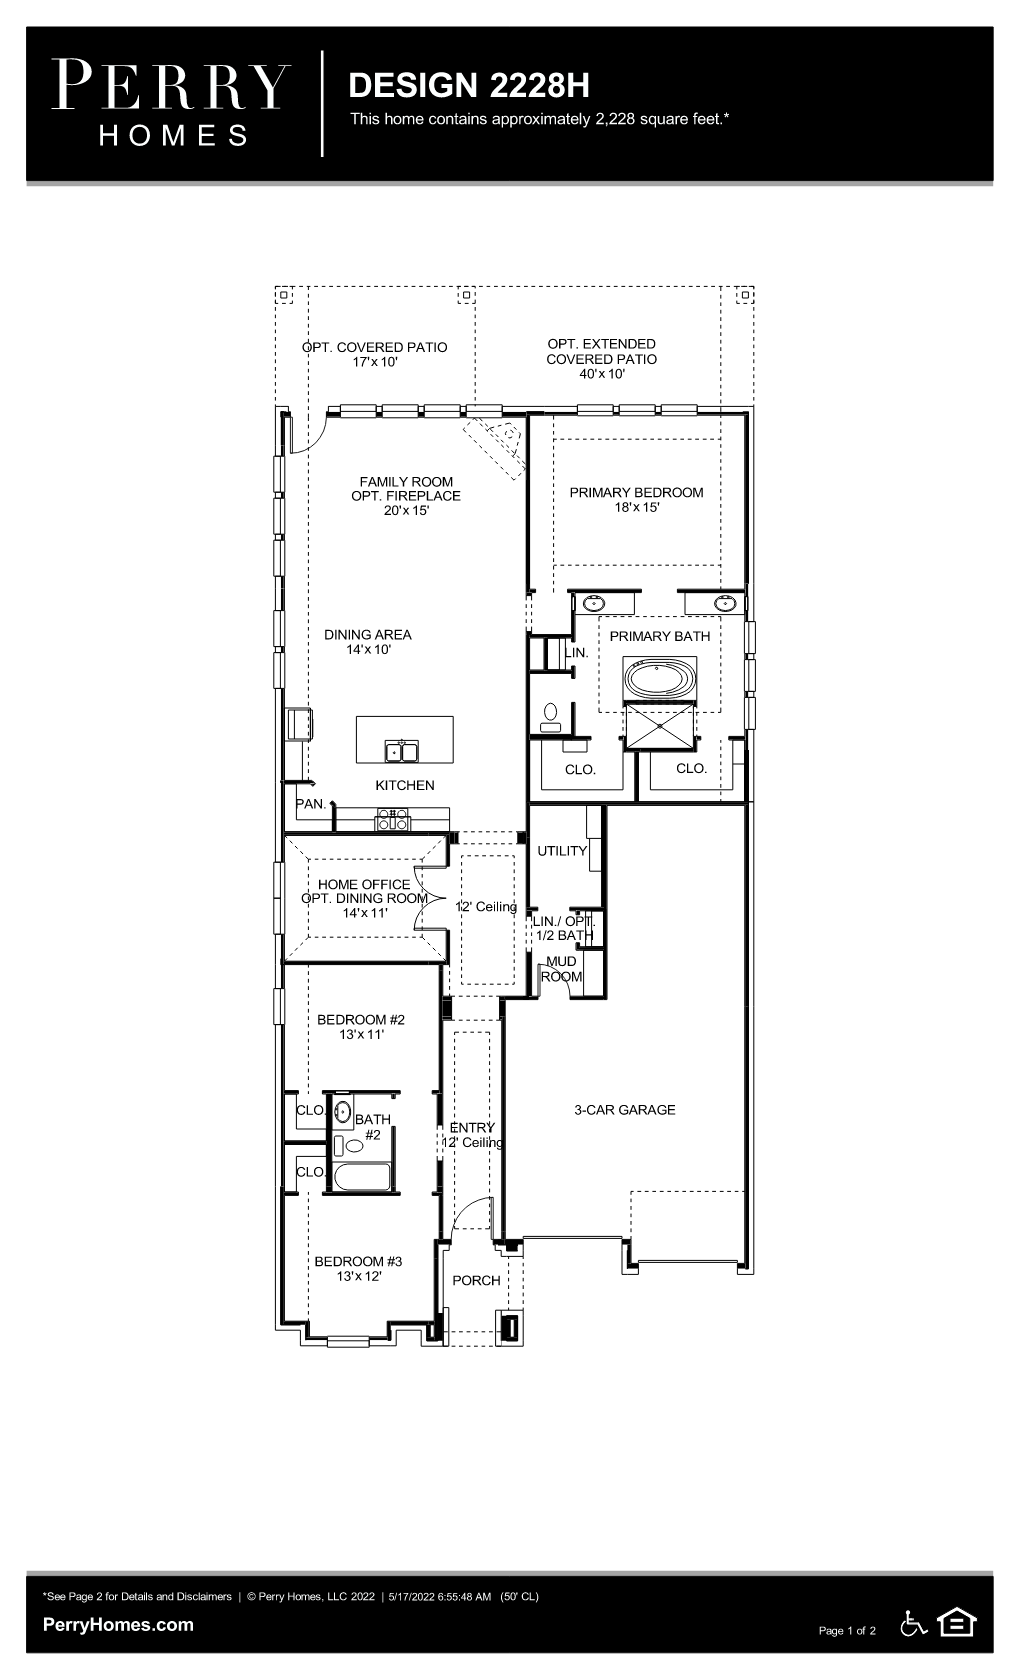 Floor Plan for 2228H